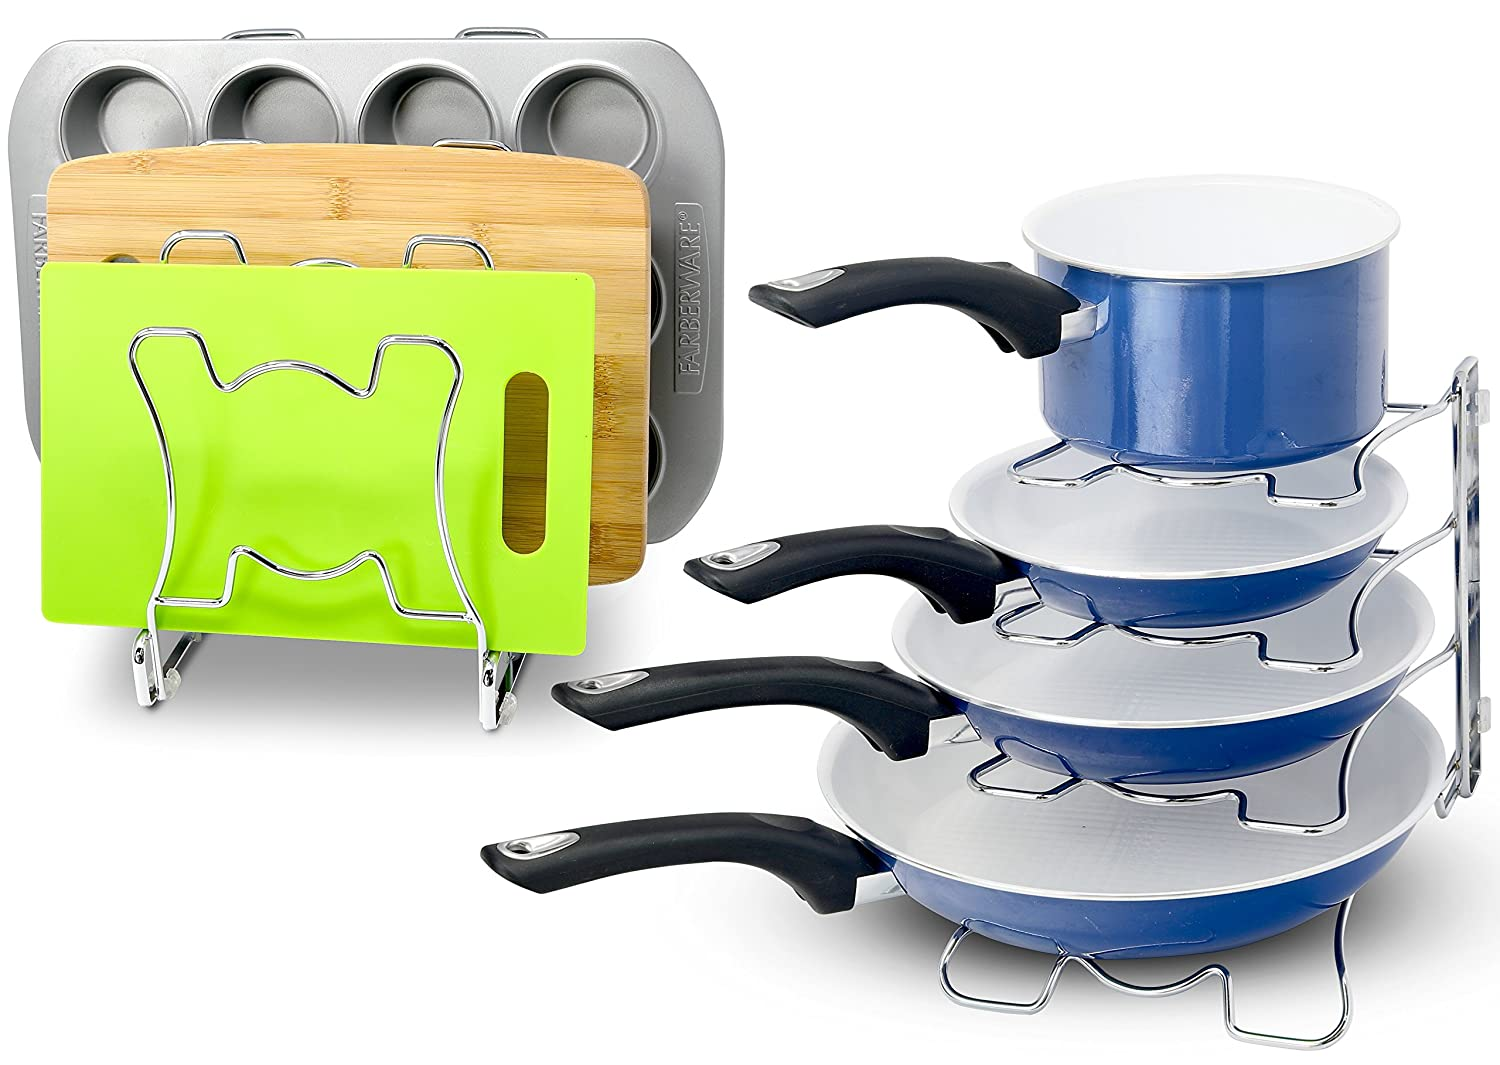 SimpleHouseware Kitchen Cabinet Pan and Pot Cookware Organizer Rack Holder Chrome Simple Houseware CO-011-1 2 Pack